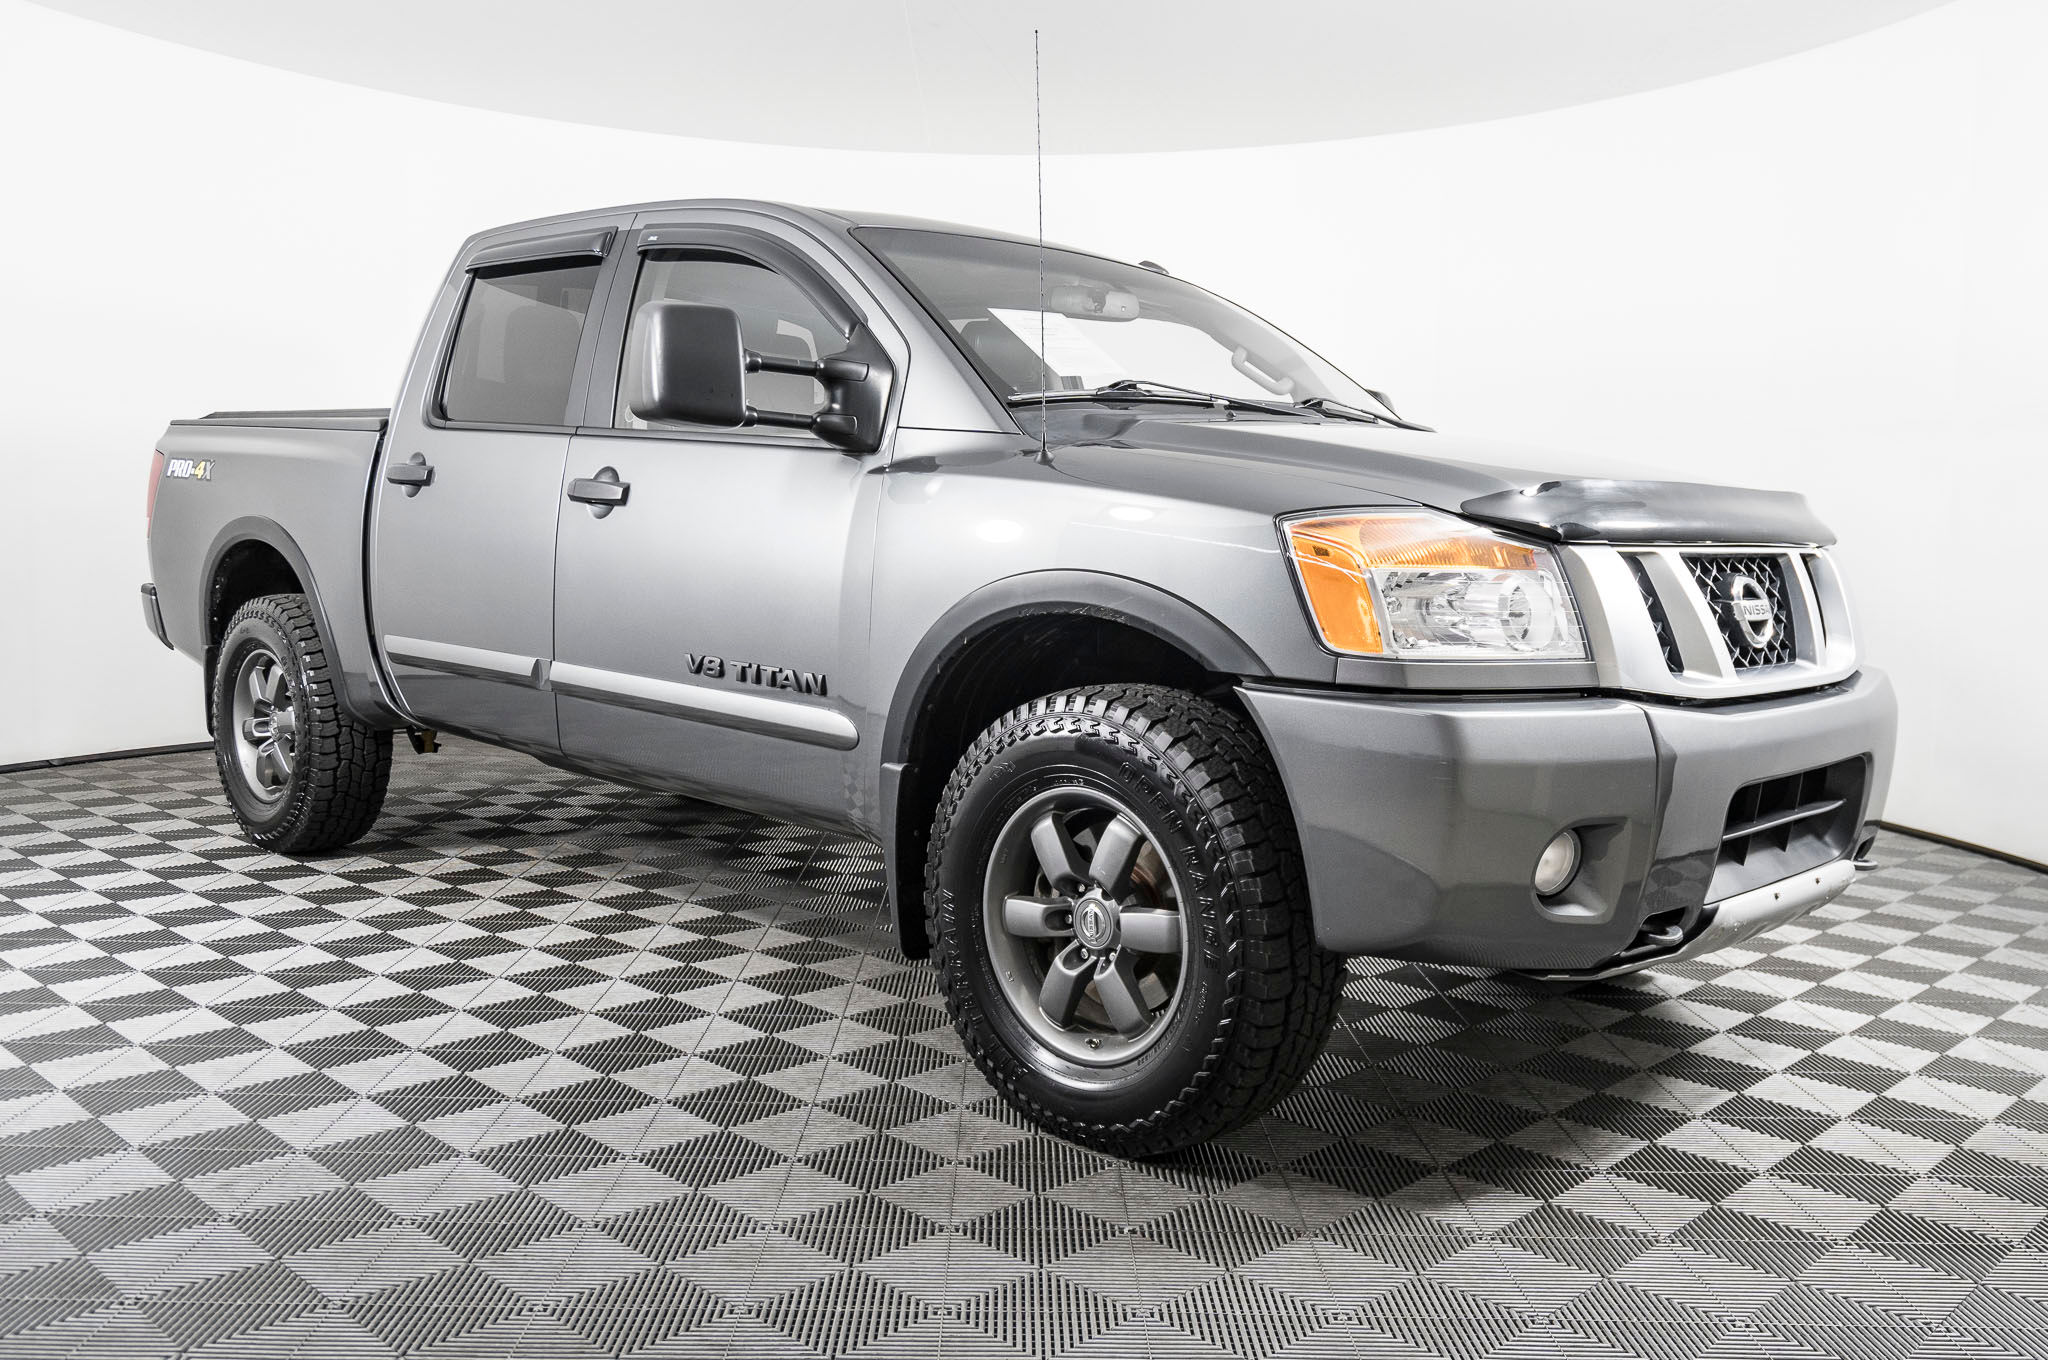 used 2015 nissan titan pro 4x 4x4 truck for sale northwest motorsport used 2015 nissan titan pro 4x 4x4 truck